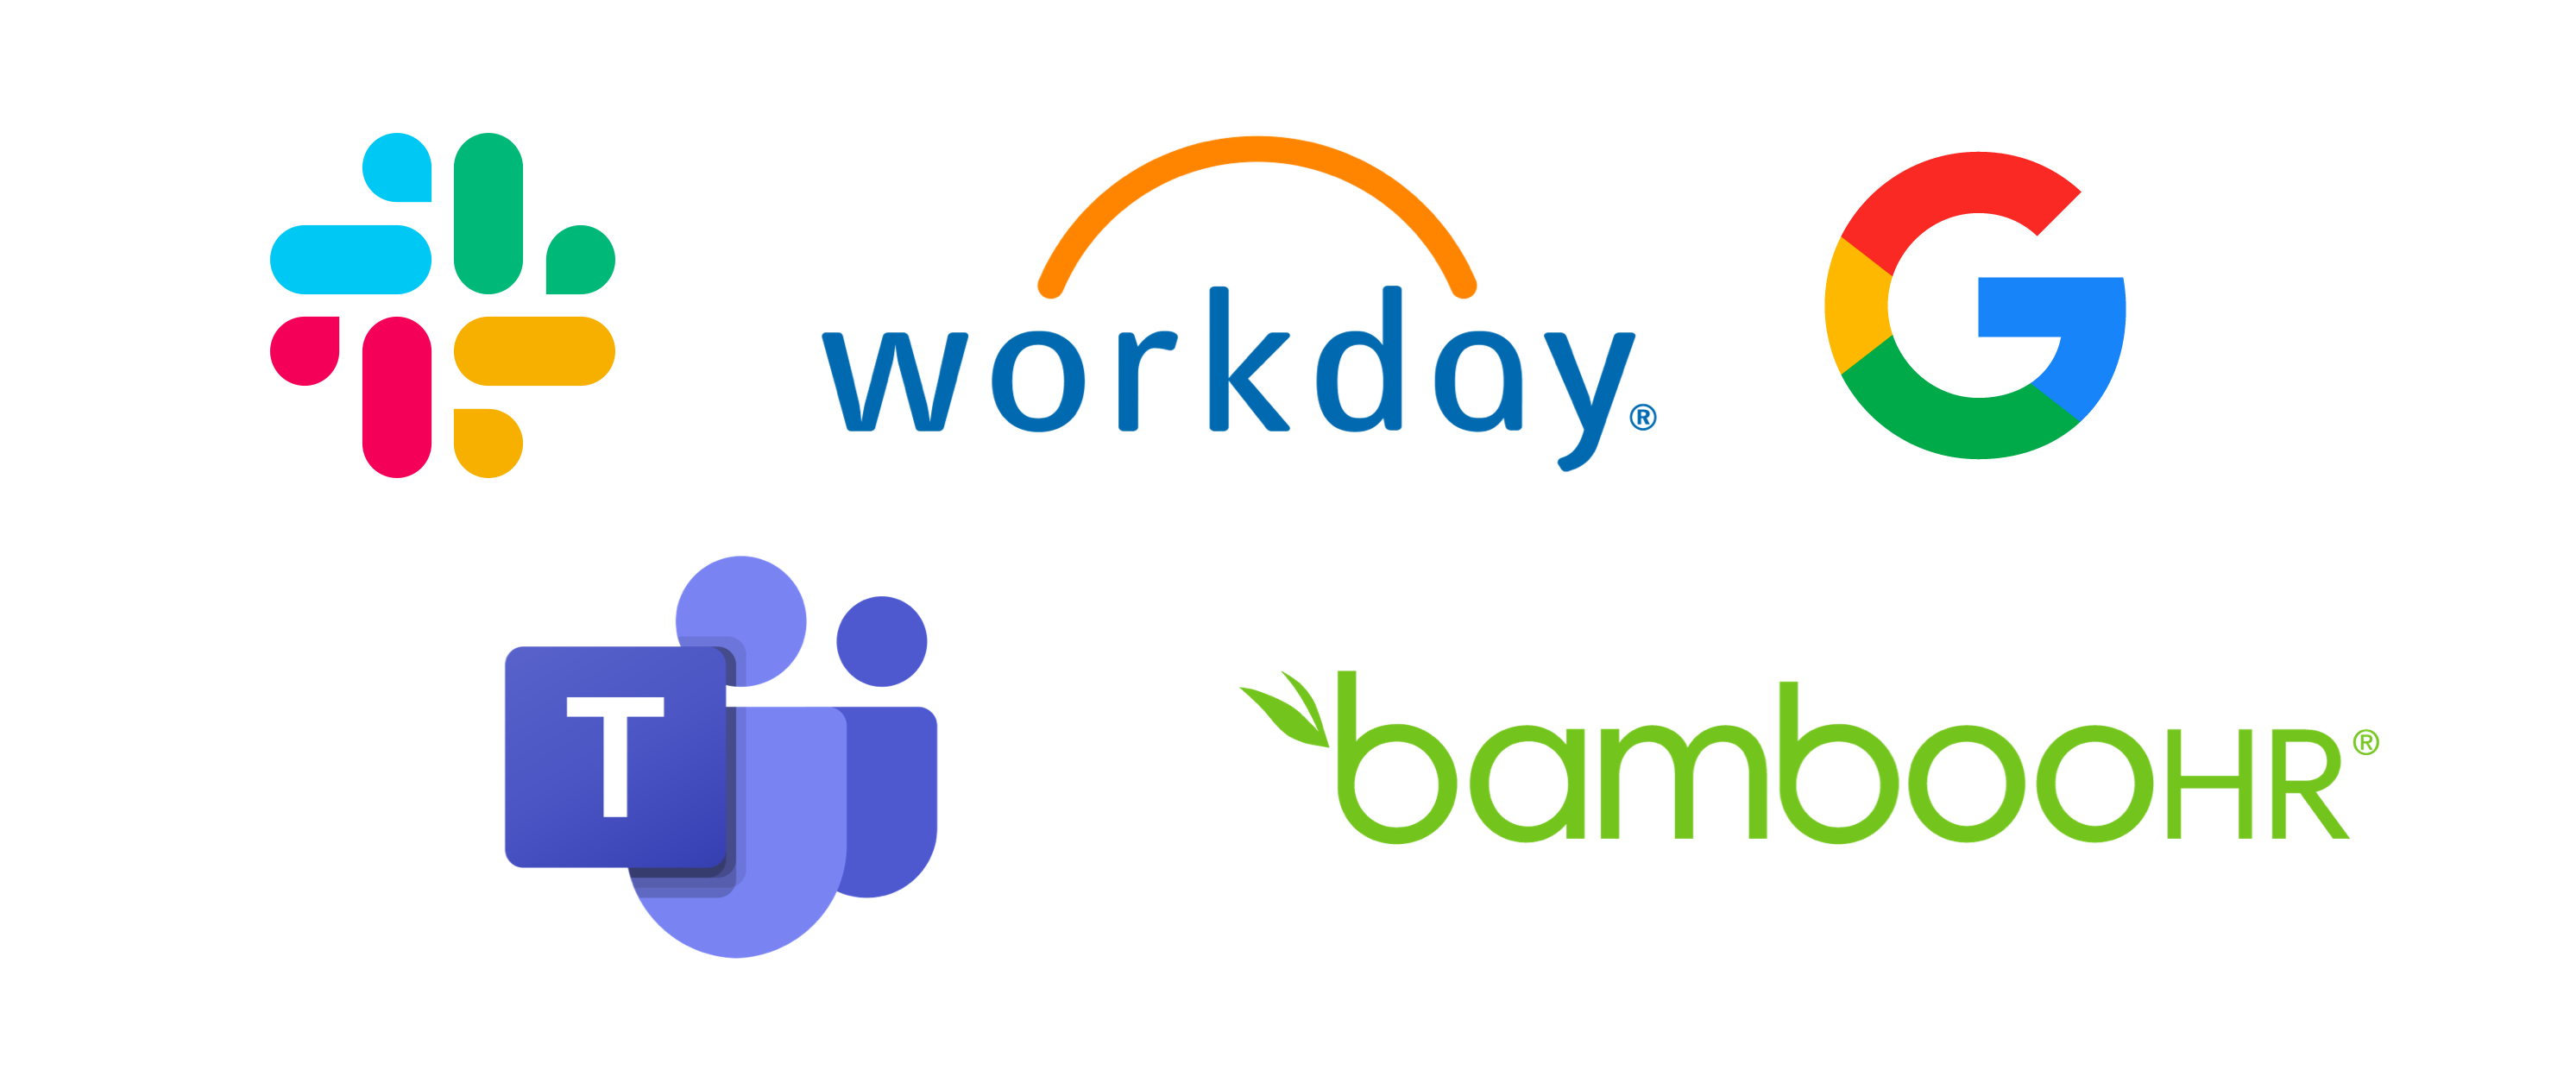 A collection of company logos depicting the HR & workflow tools that frankli integrates with to provide its services